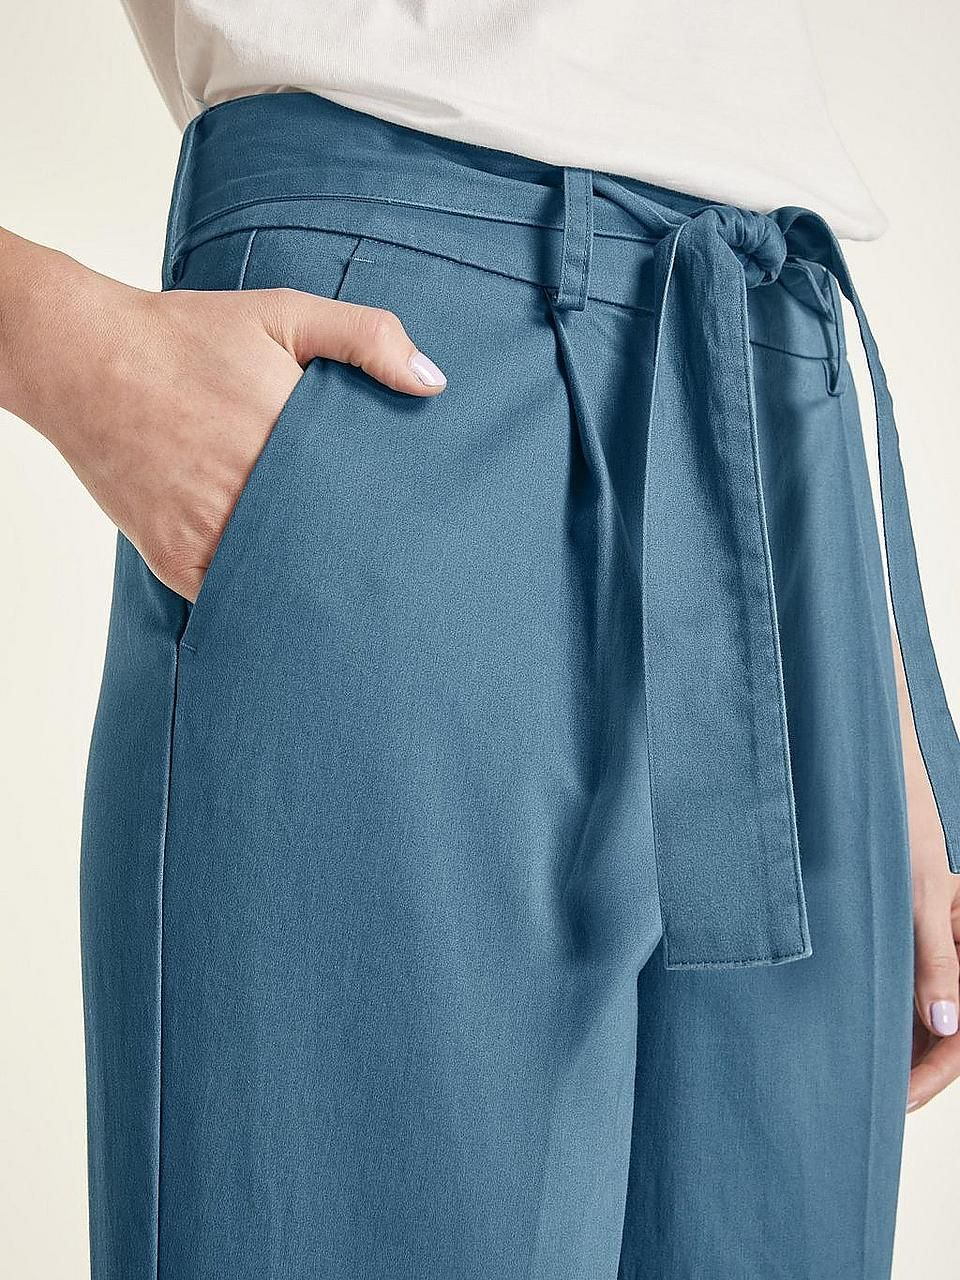 211e41a323c heine STYLE Hose in angesgter High-Waist-Form Business Outfits  Lass dich  von